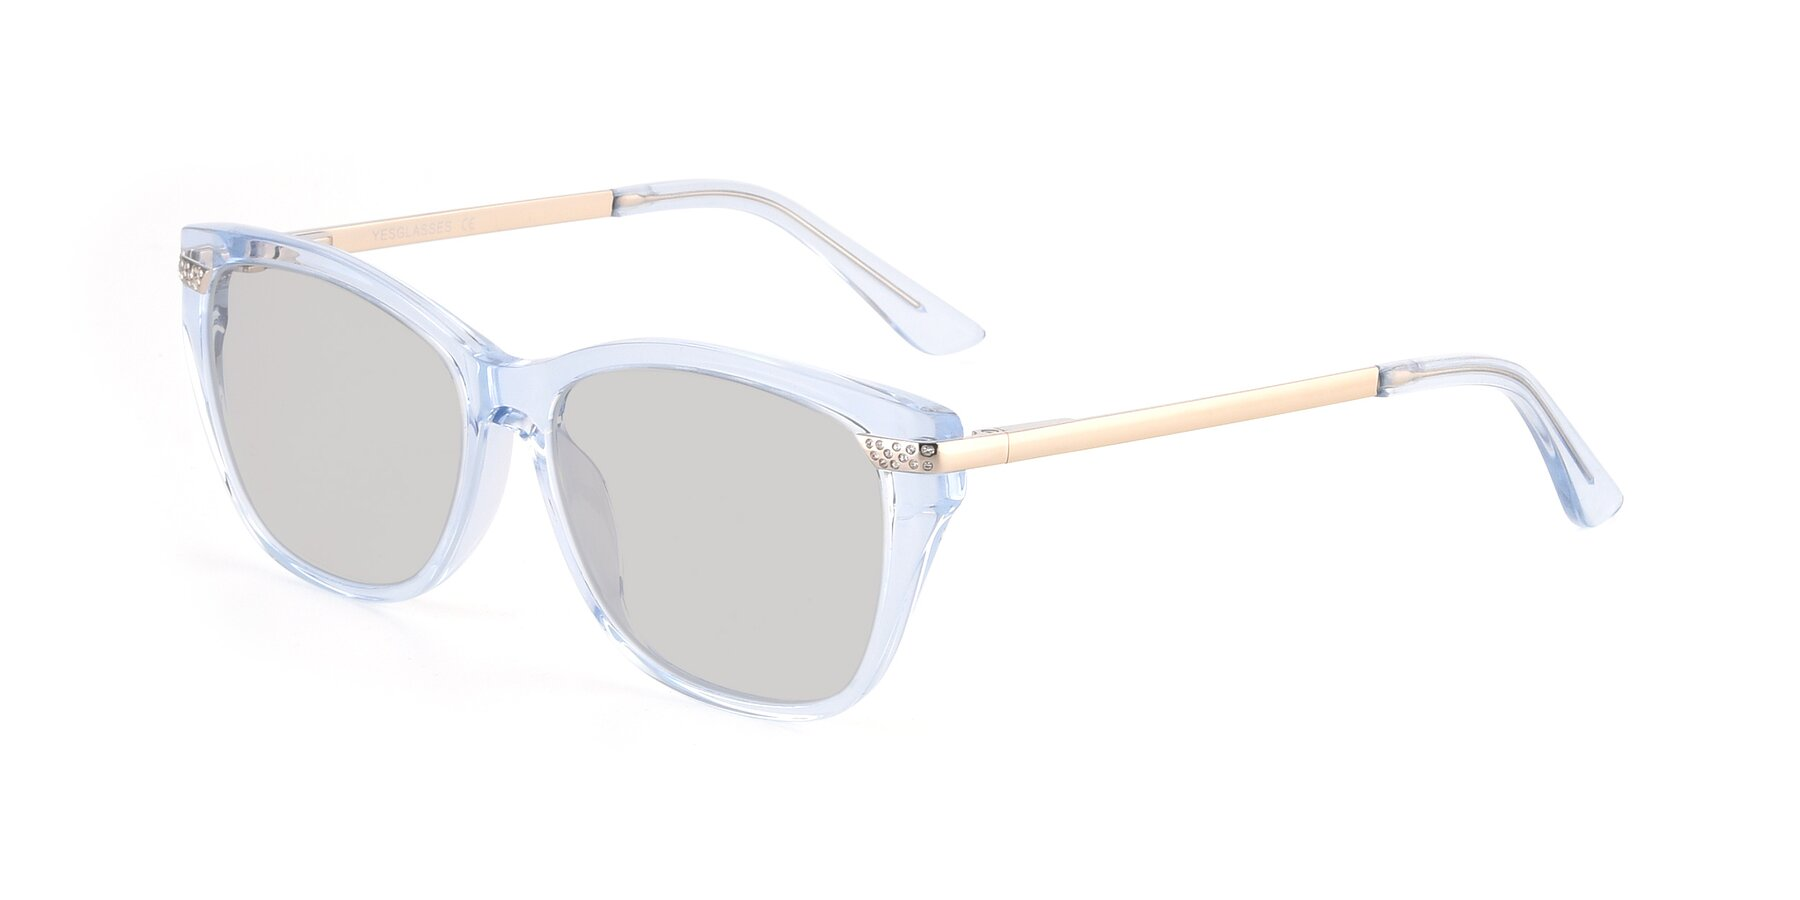 Angle of 17515 in Transparent Blue with Light Gray Tinted Lenses